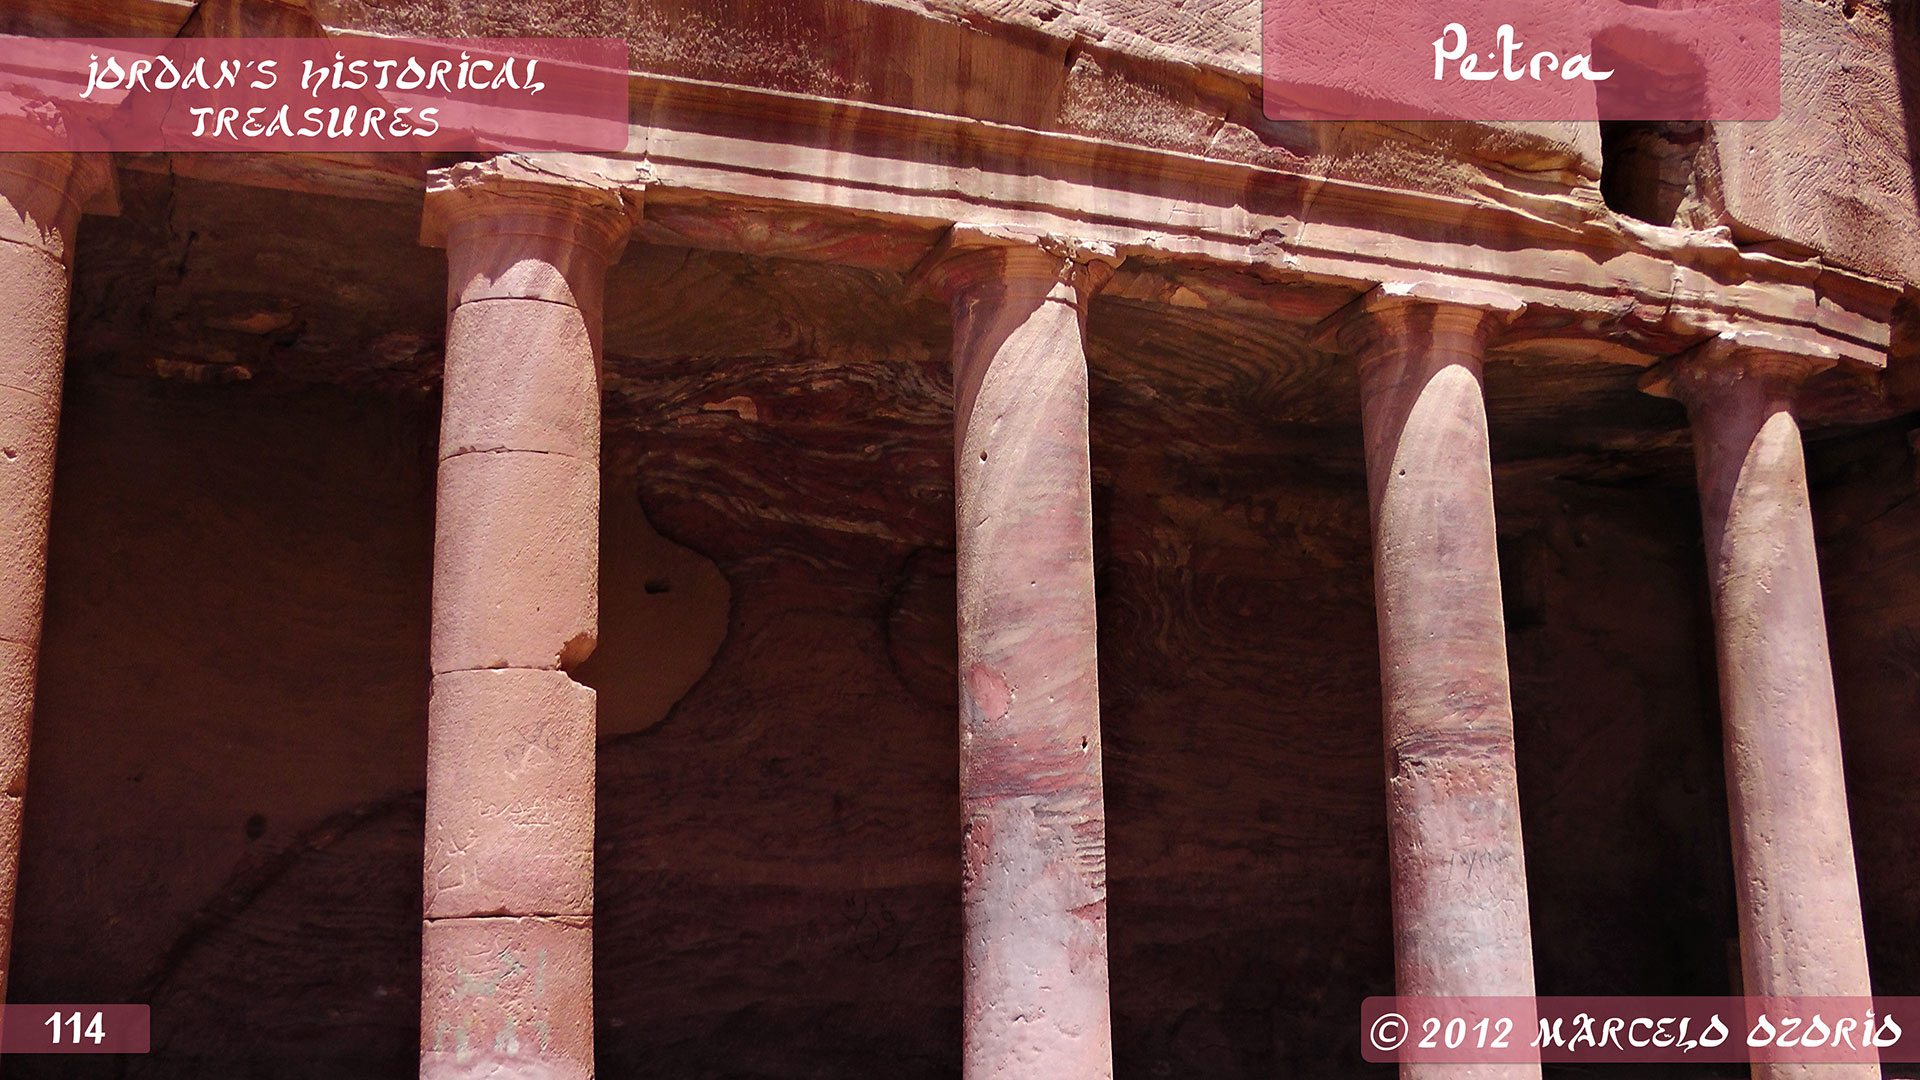 Petra Archaeological City Jordan 34 - The Astonishing Treasure at Petra - Jordan